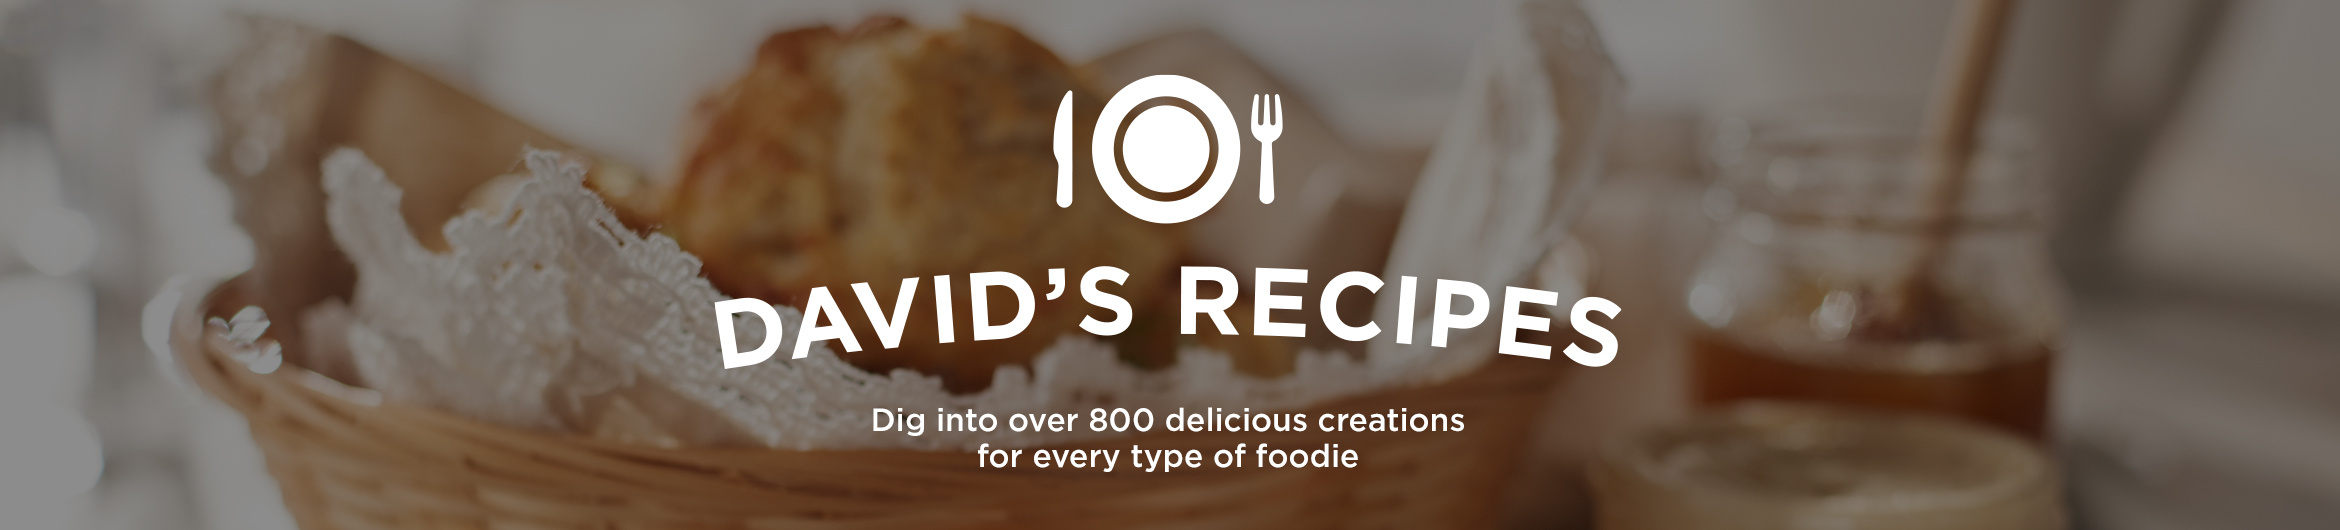 David's Recipes  Dig into over 800 delicious creations for every type of foodie